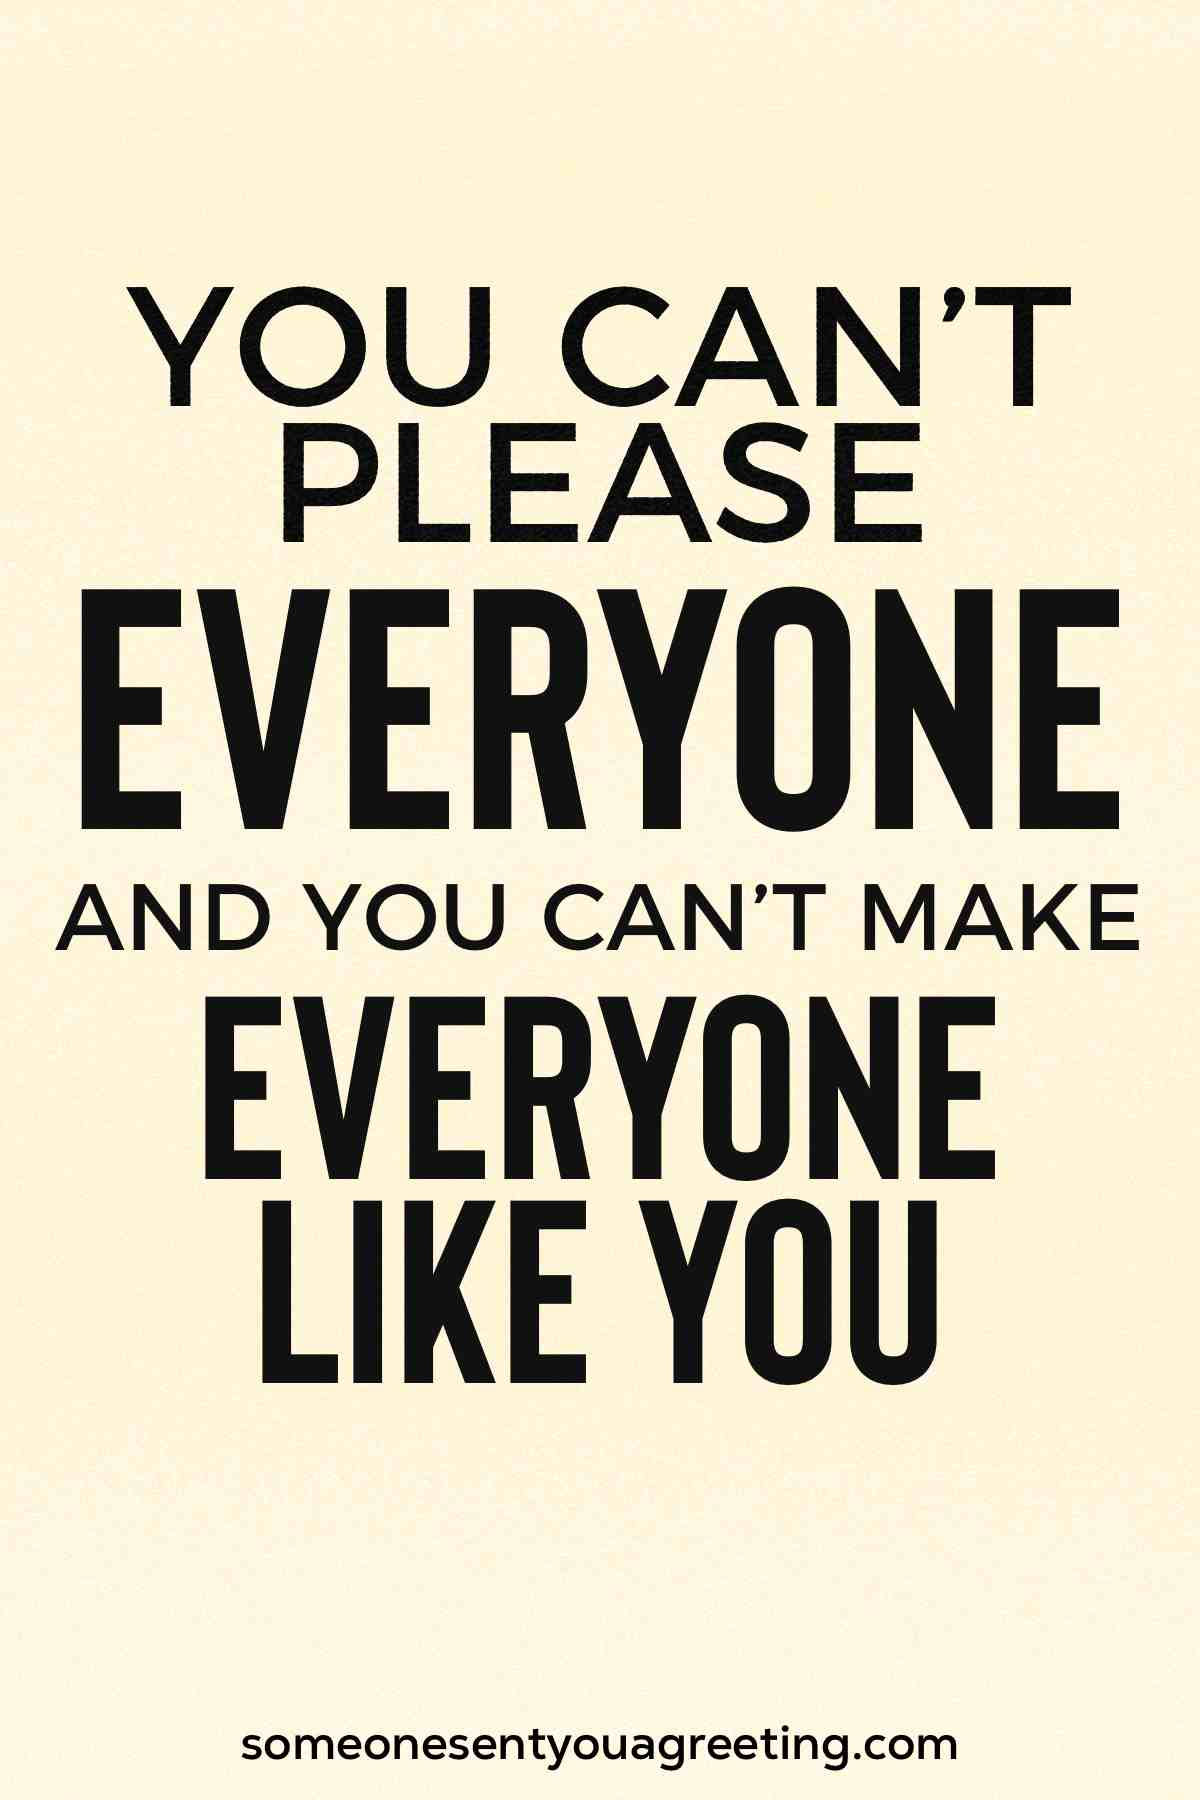 you can't make everyone like you short empowerment quote